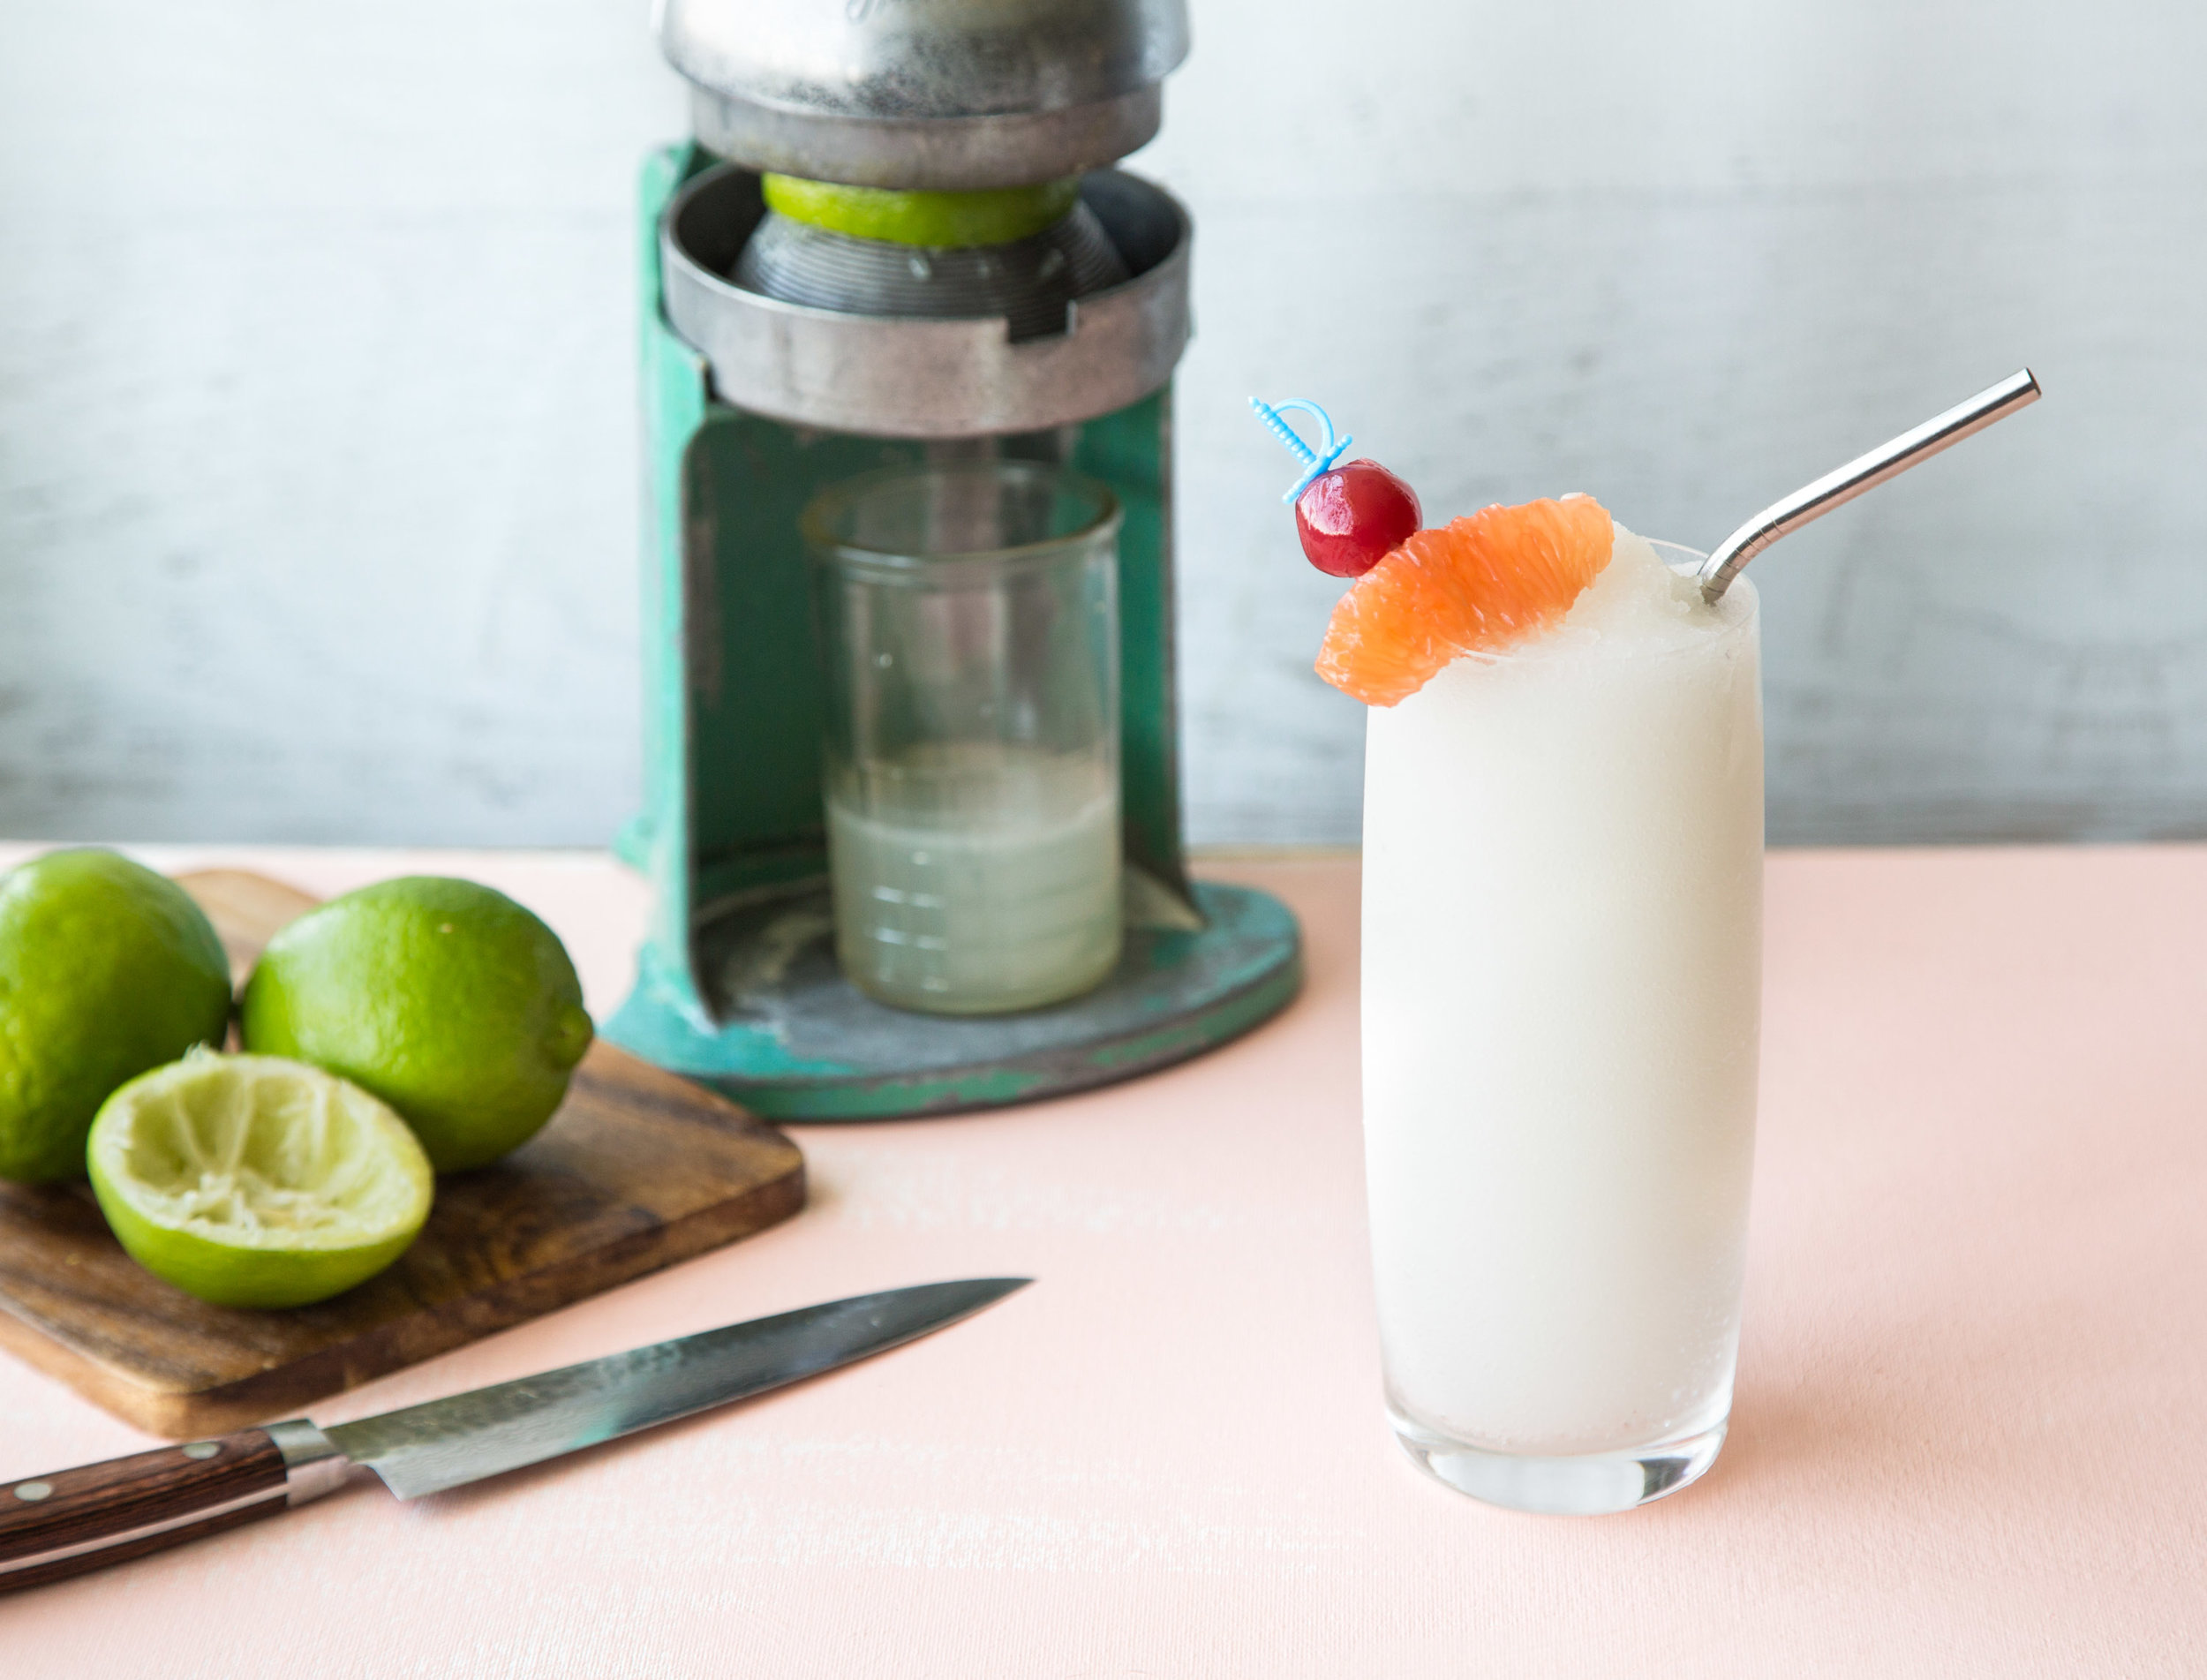 Frozen Daiquiri on a table next to a cutting board and juicer.